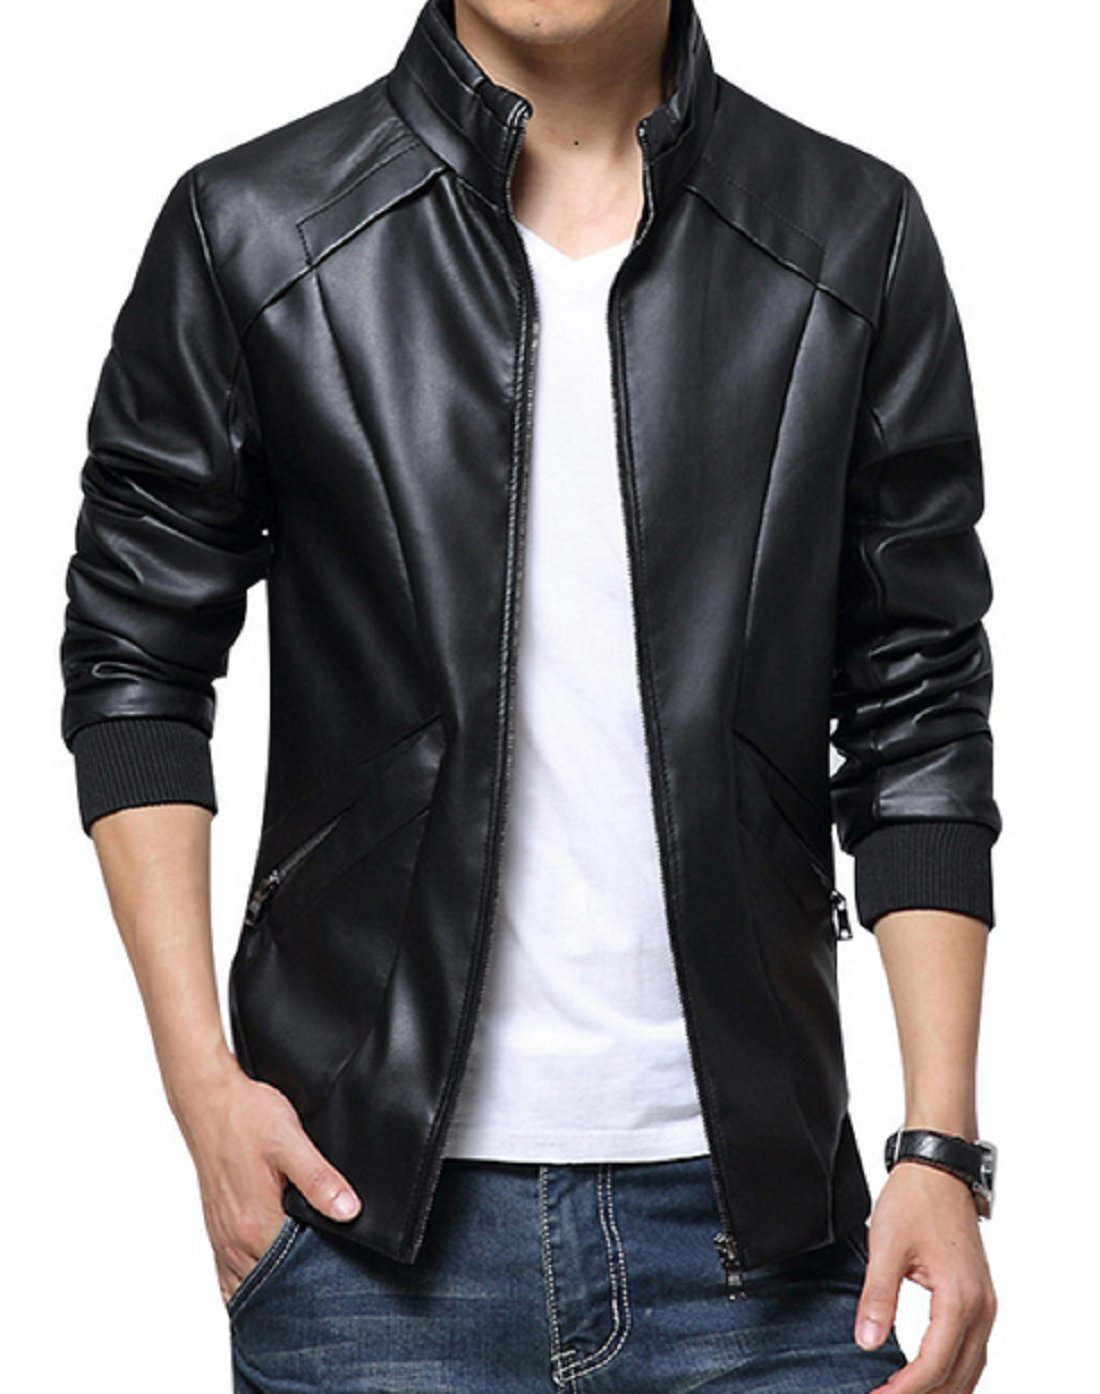 KIWEN Men's Stand Up Collar Faux Leather Jacket Slim Fit(Black,L size) by KIWEN